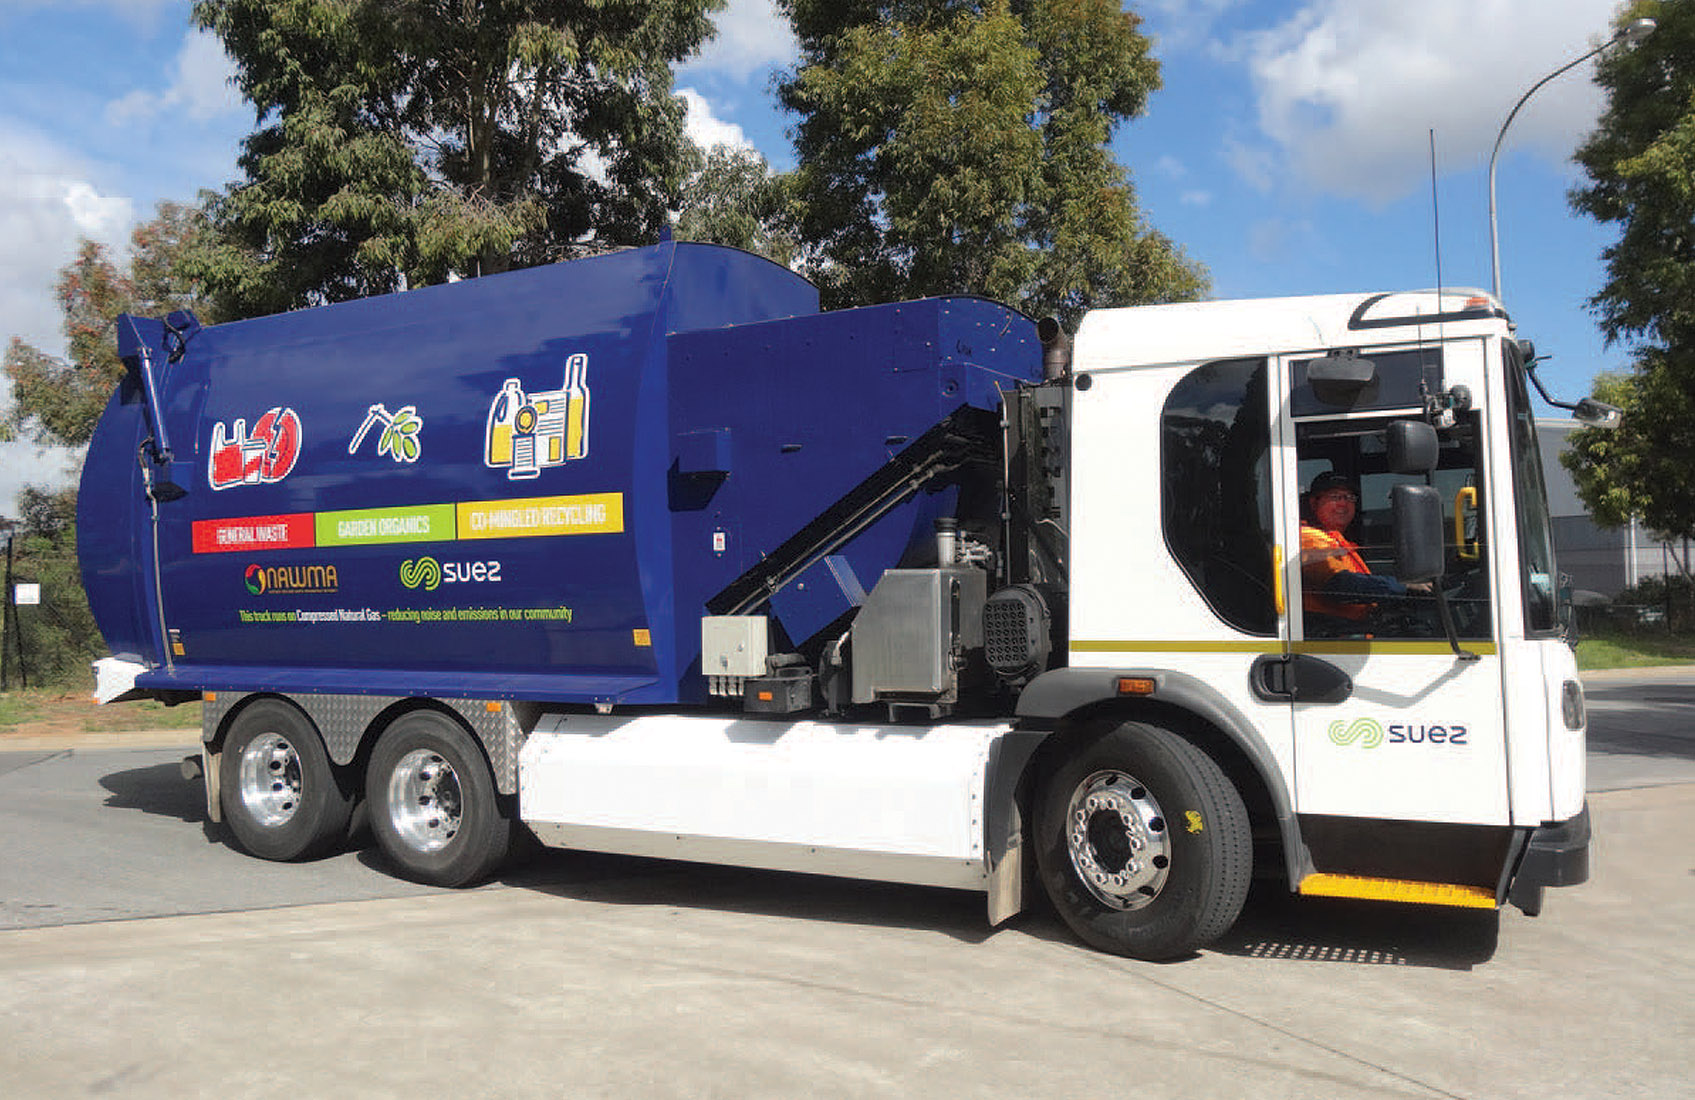 NAWMA - Northern Adelaide Waste Management Authority